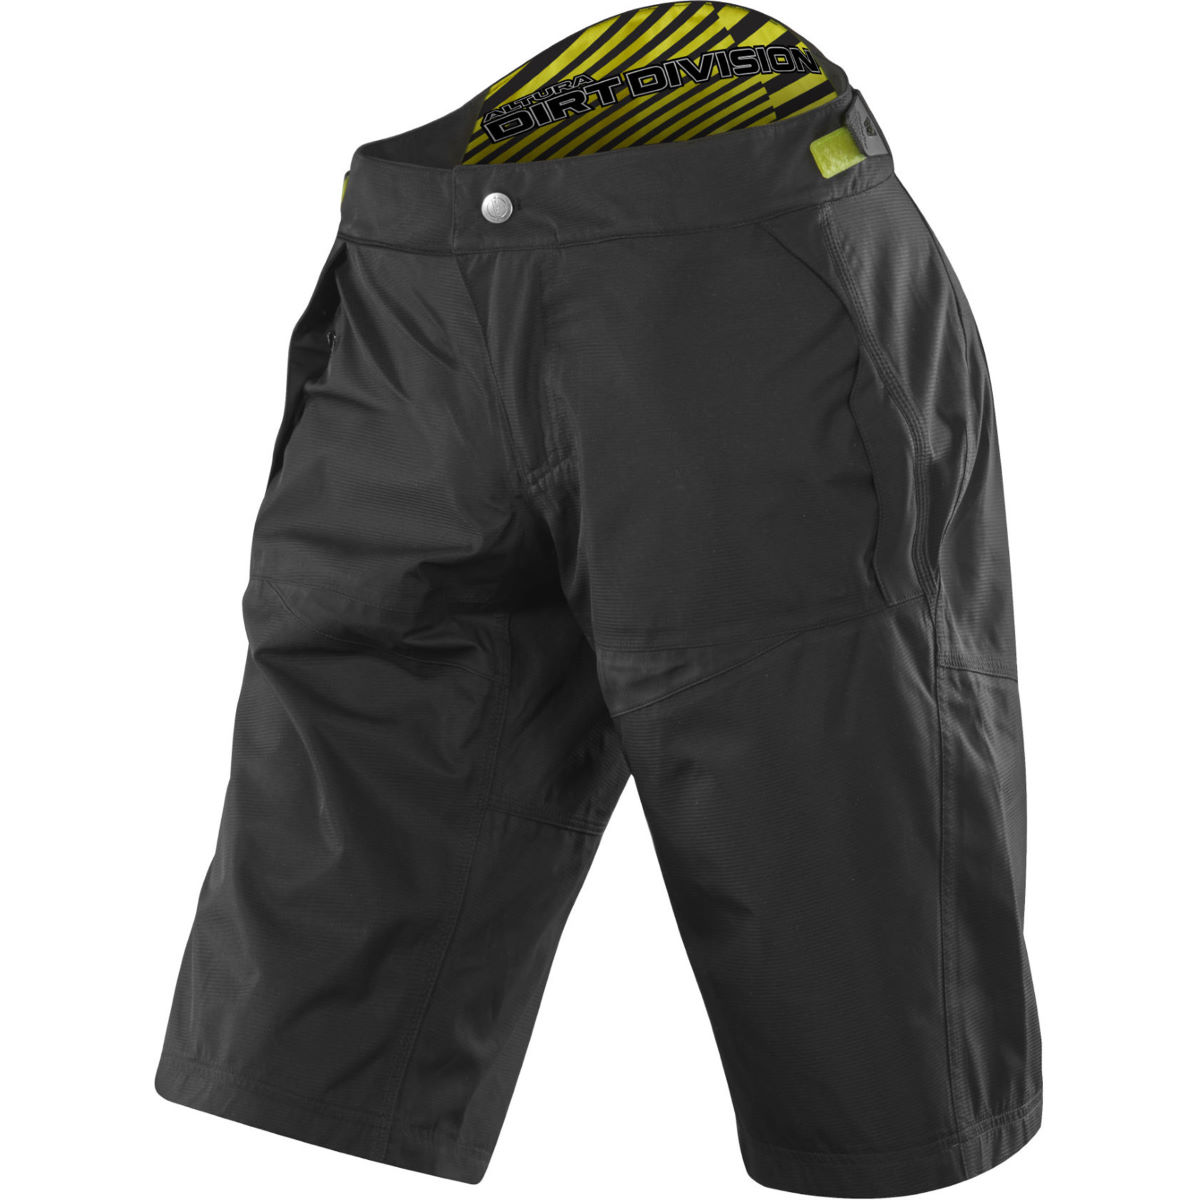 Short Altura Five40 (imperméable) - XXL Noir Cuissards courts